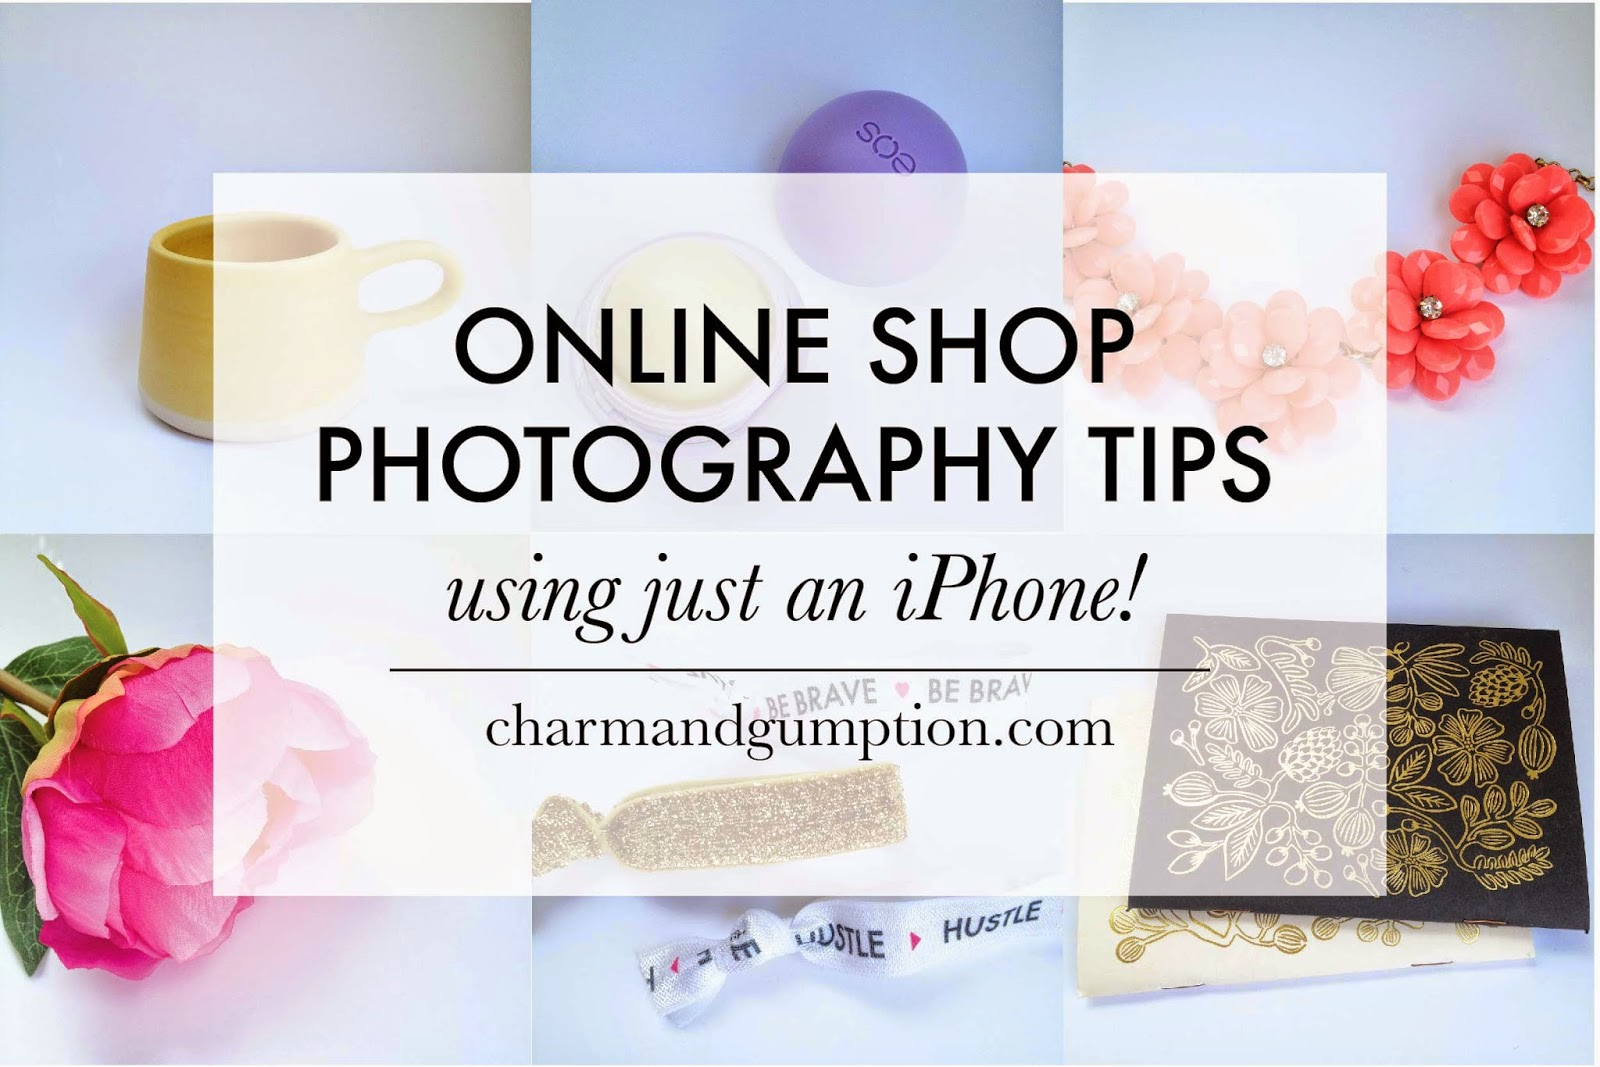 ONLINE SHOP PHOTOGRAPHY TIPS, WITH AN IPHONE! | charm & gumption blog